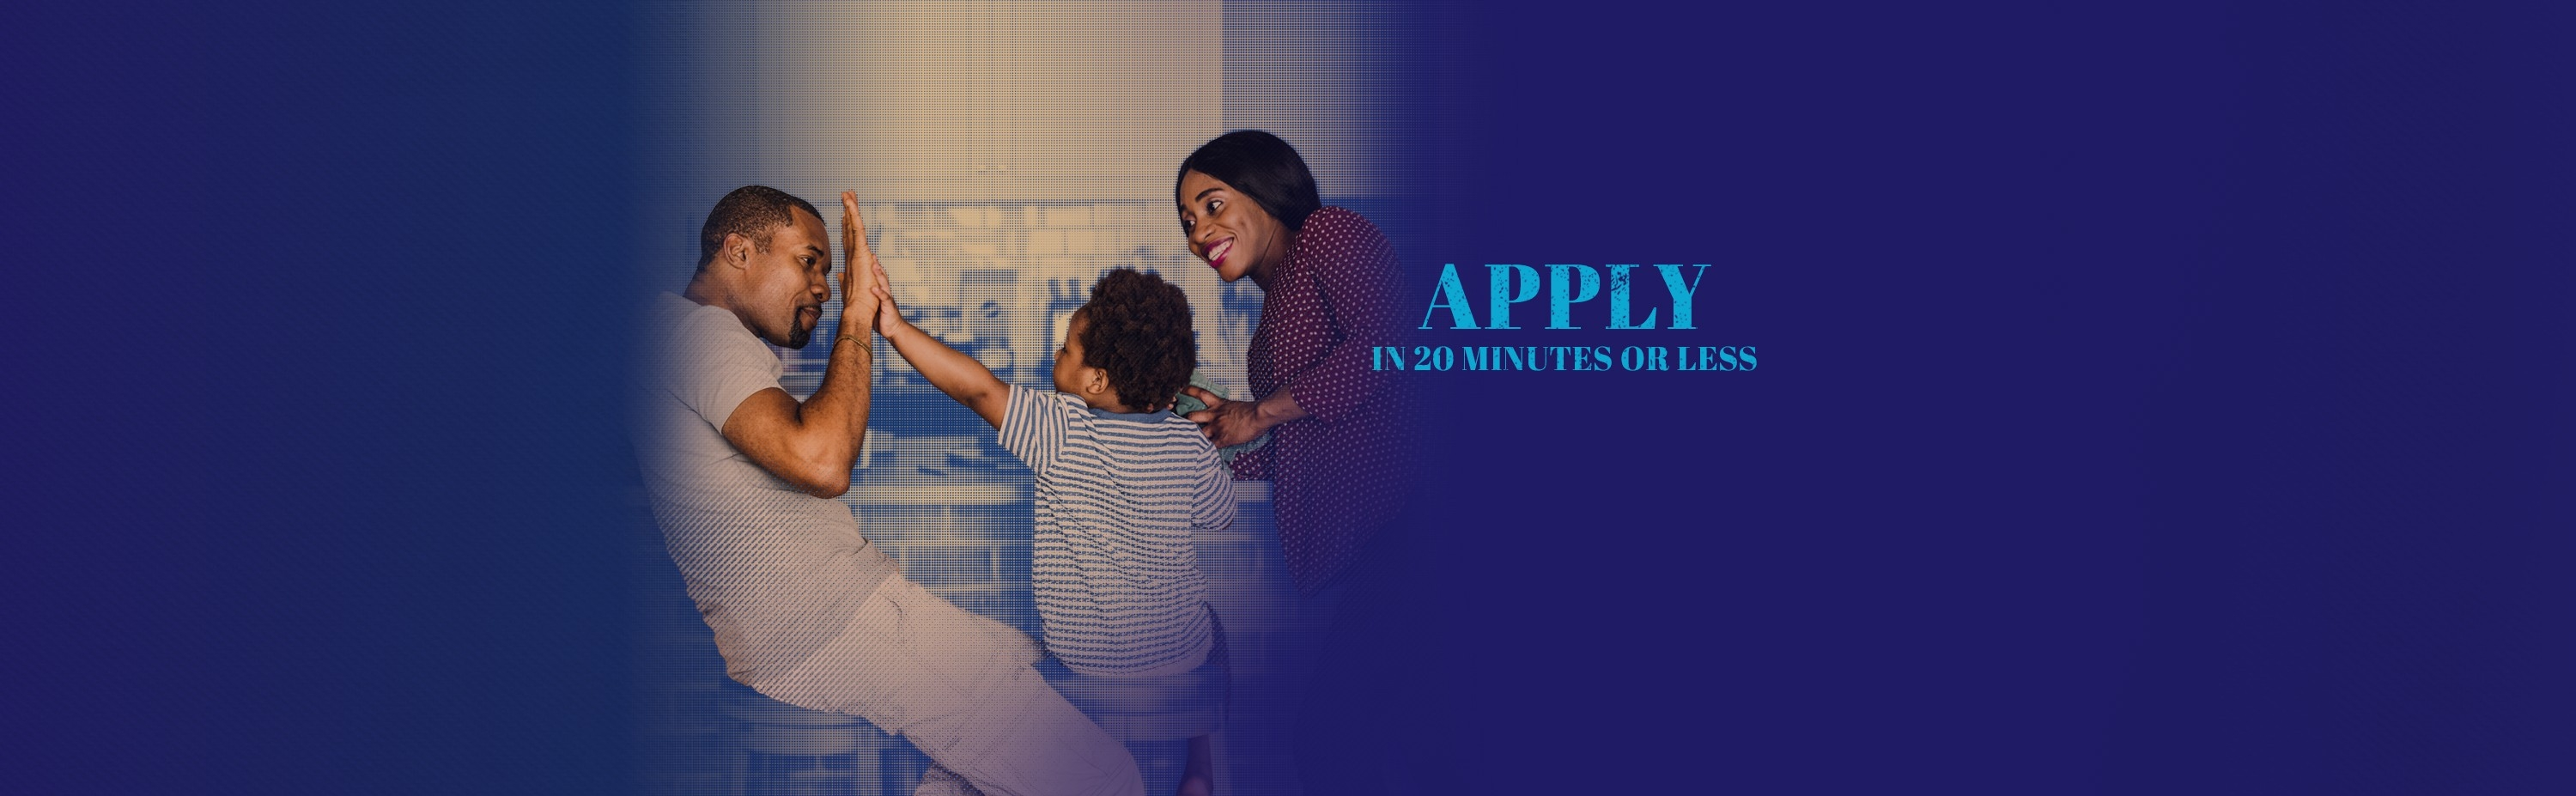 Mom joyfully playing with her happy son tossing him in the air in their new home purchased with a mortgage from Fidelity Bank & Trust. Text on photo says Apply in 20 minutes or less